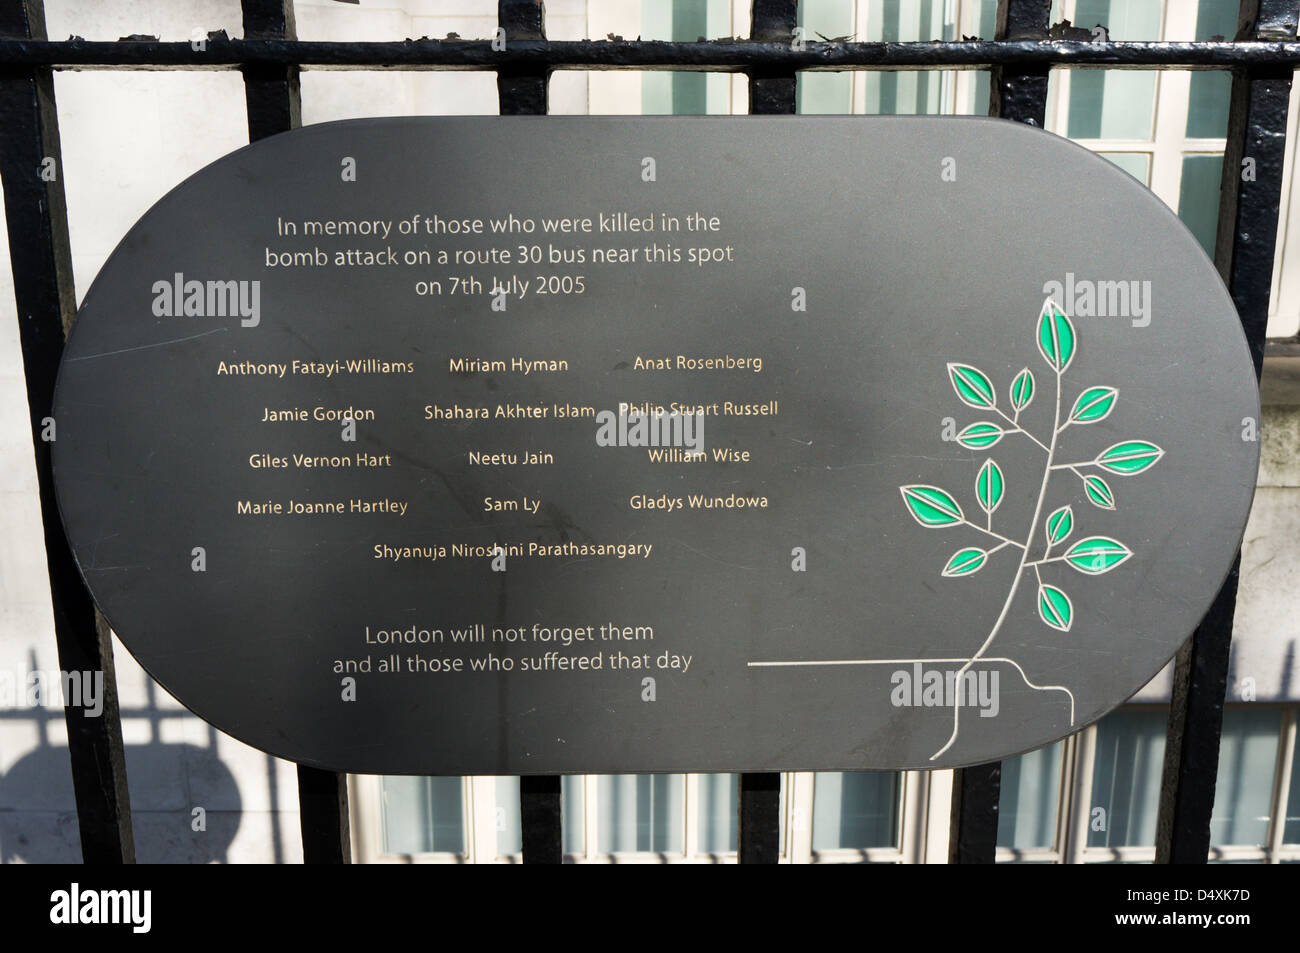 A plaque on railings in Tavistock Square in memory of those killed in the 7th July 2005 terrorist attack on a London - Stock Image